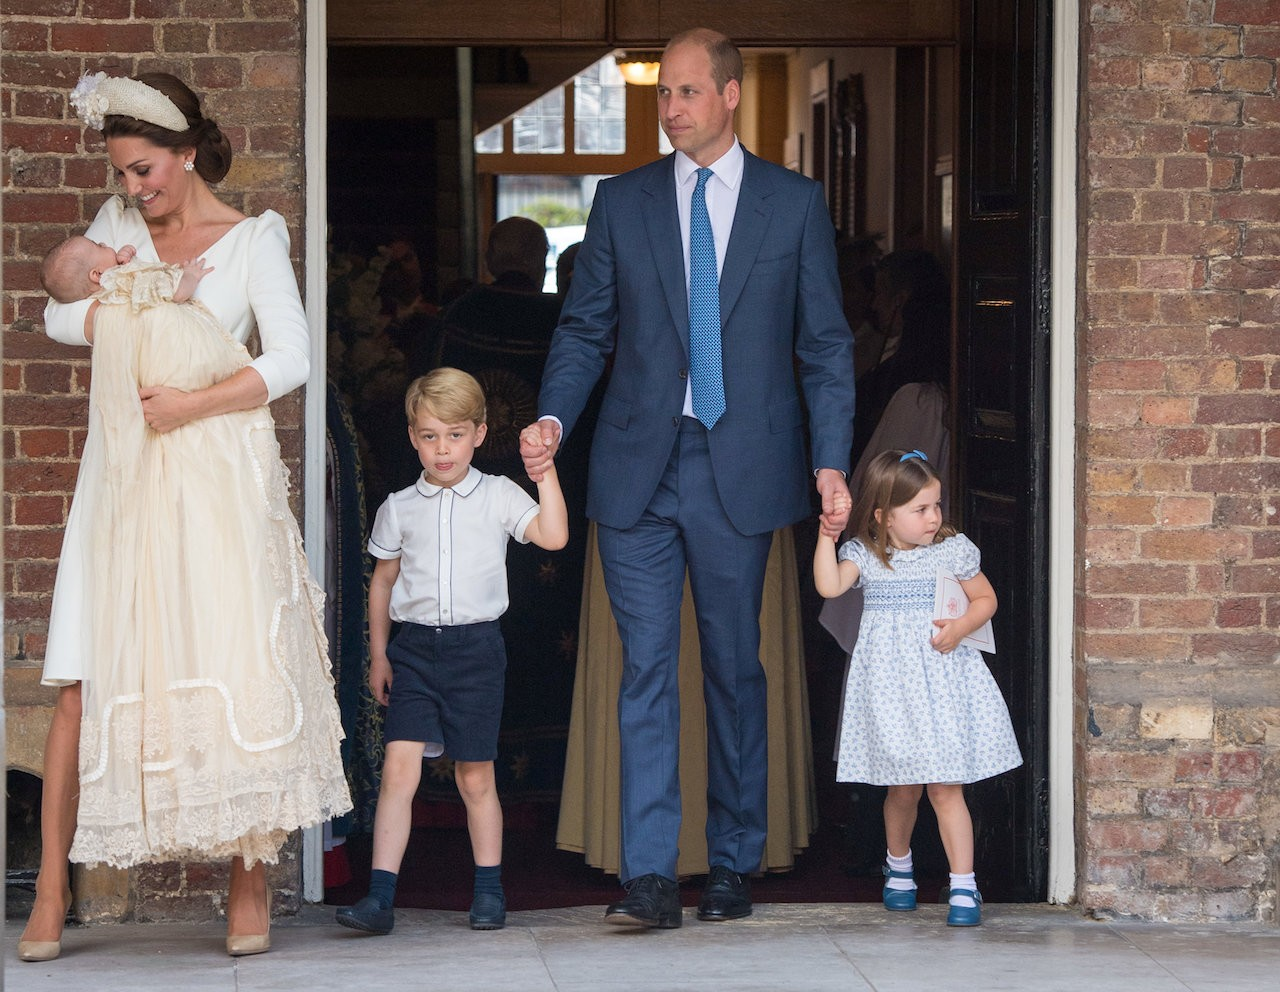 Queen misses christening of William and Kate's baby son